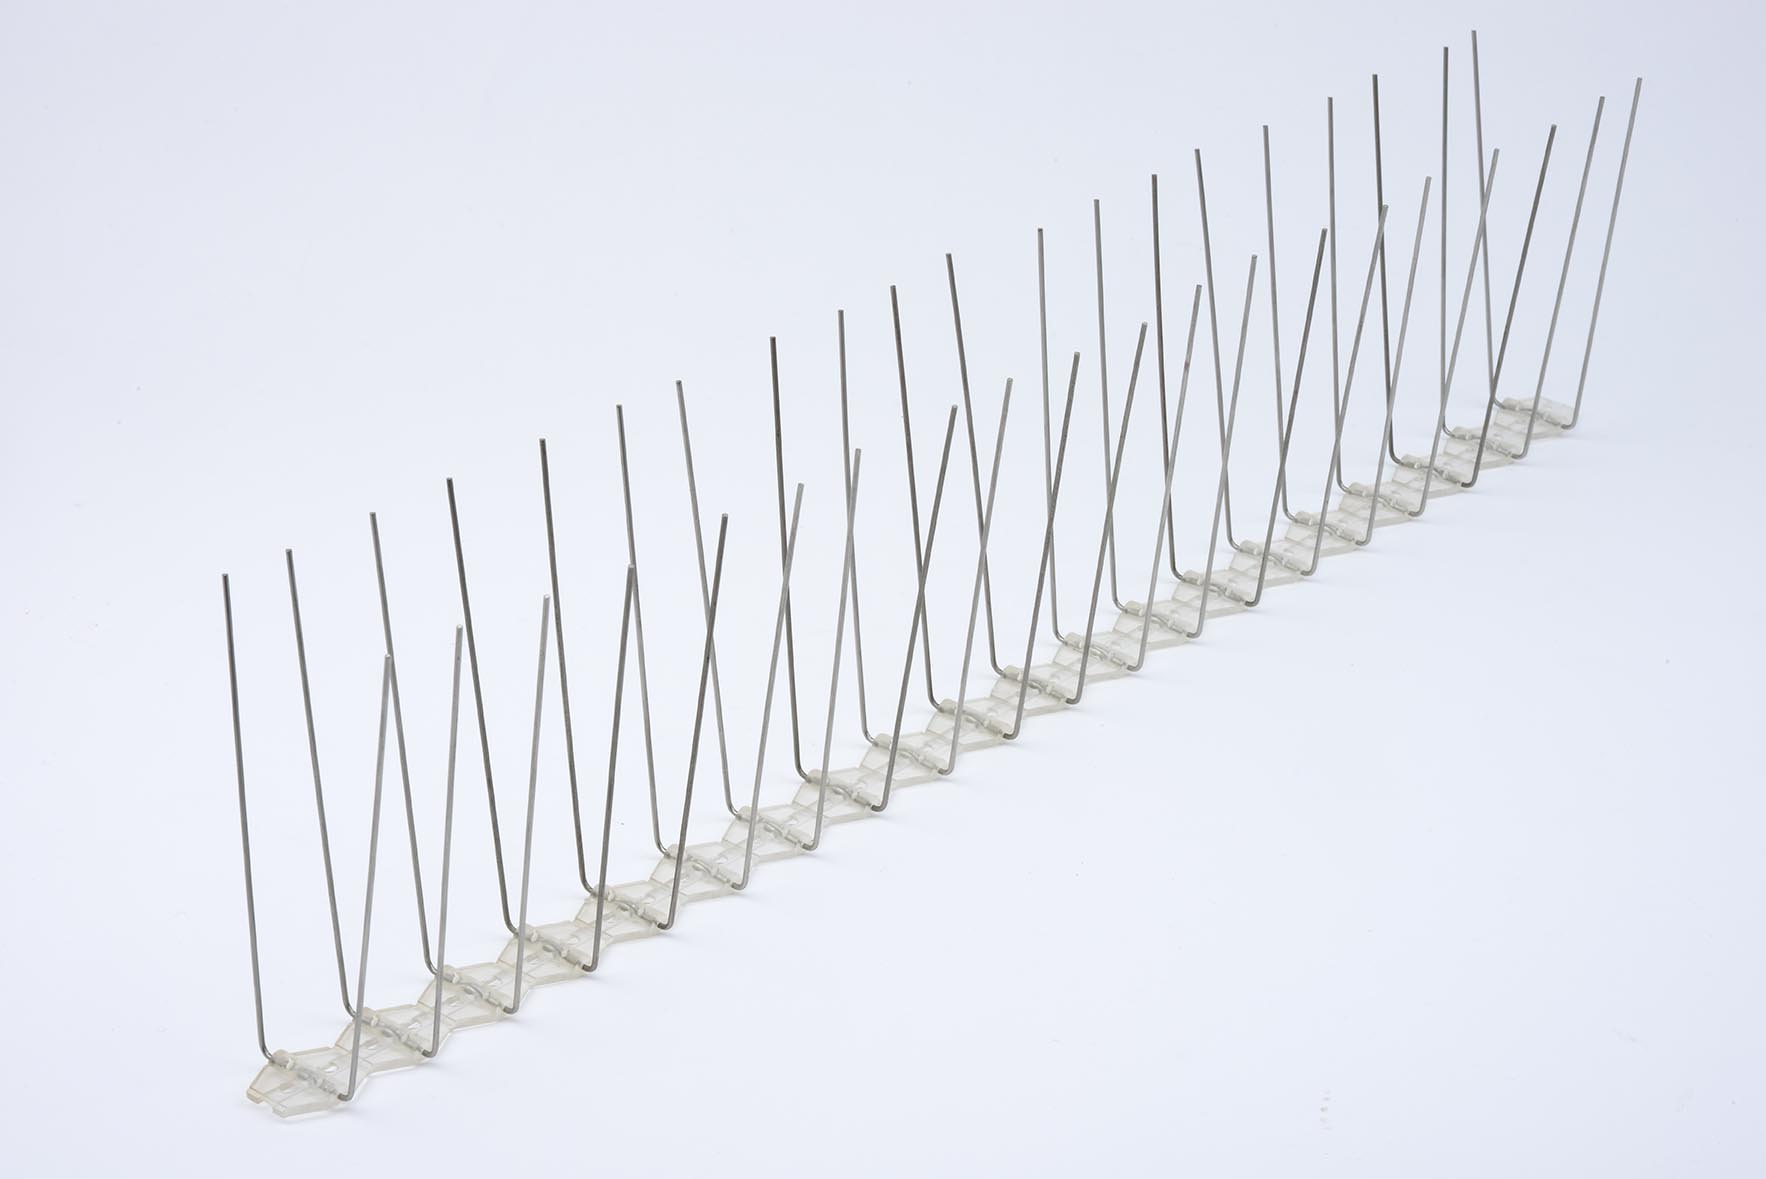 Bird Repelling Spikes